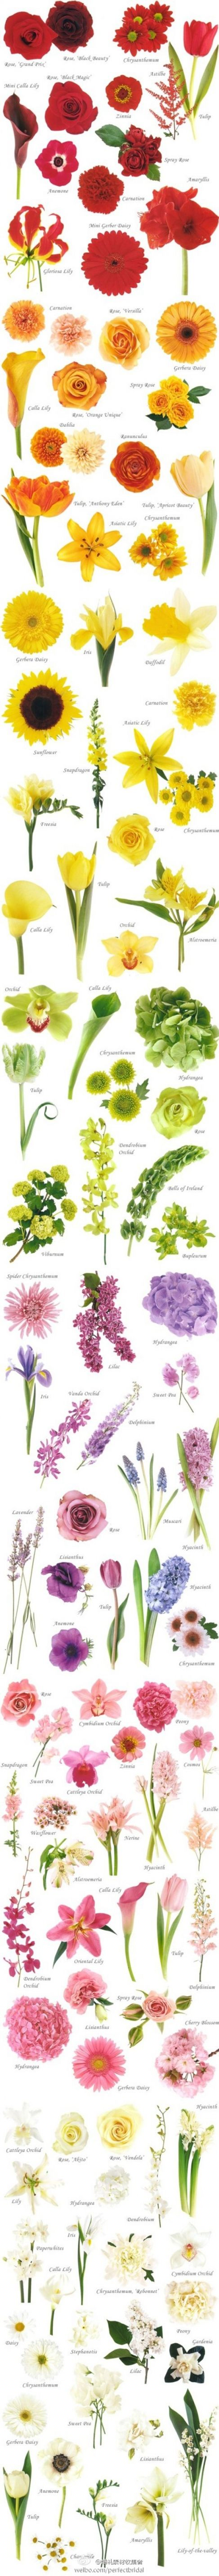 a colorful glossary of flowers